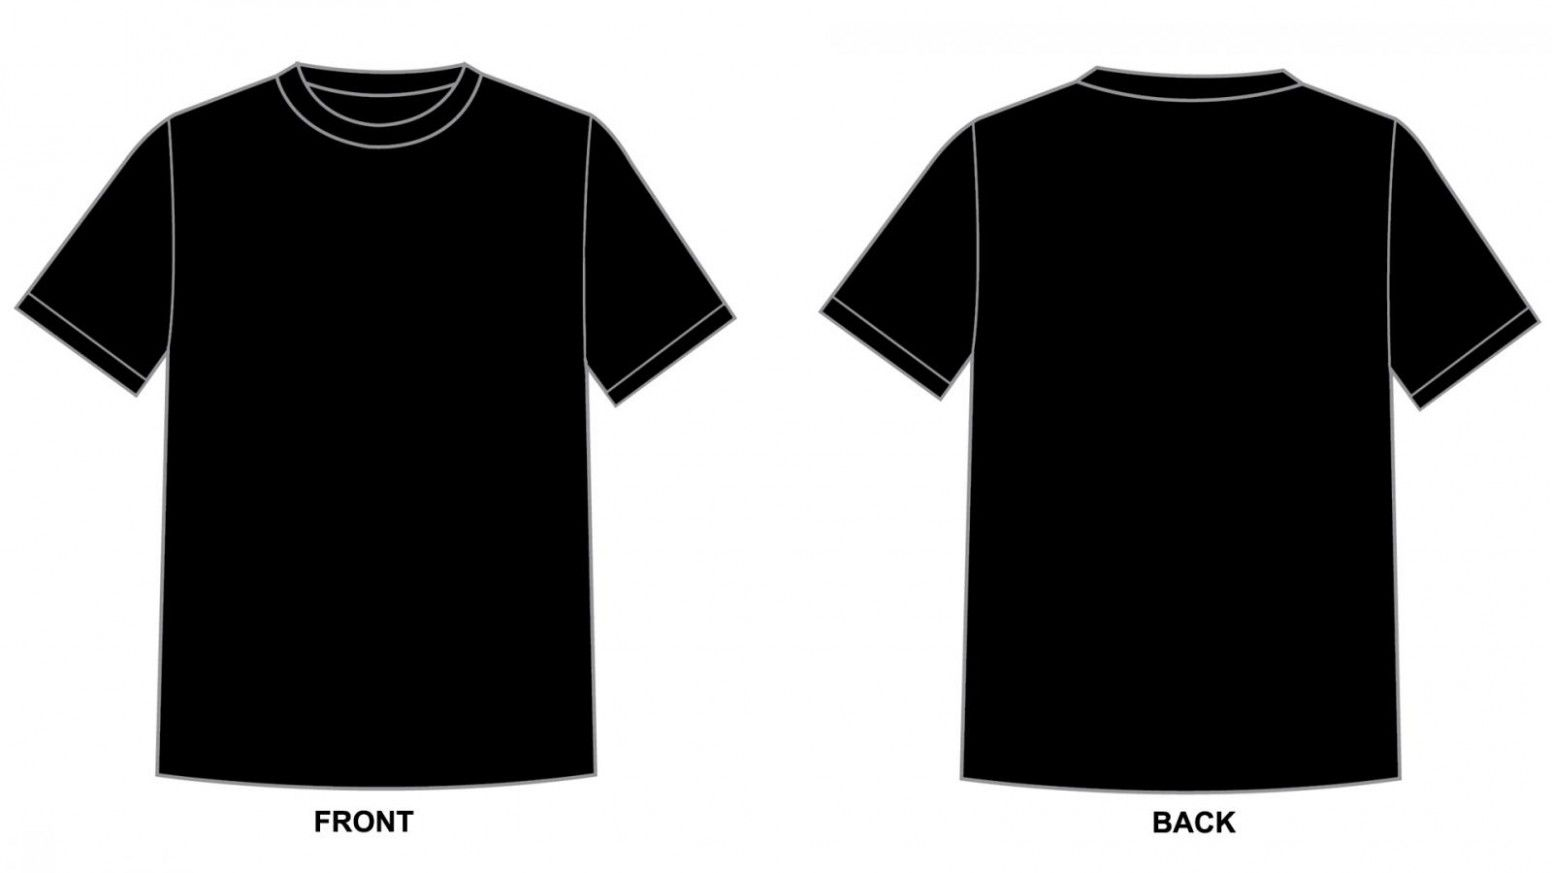 T Shirt Design Template Black Blank Tshirt Template Black In 1080p Hd Wallpapers T Shirt Design Template Hoodie Template Shirt Template Blank tshirt template for photoshop